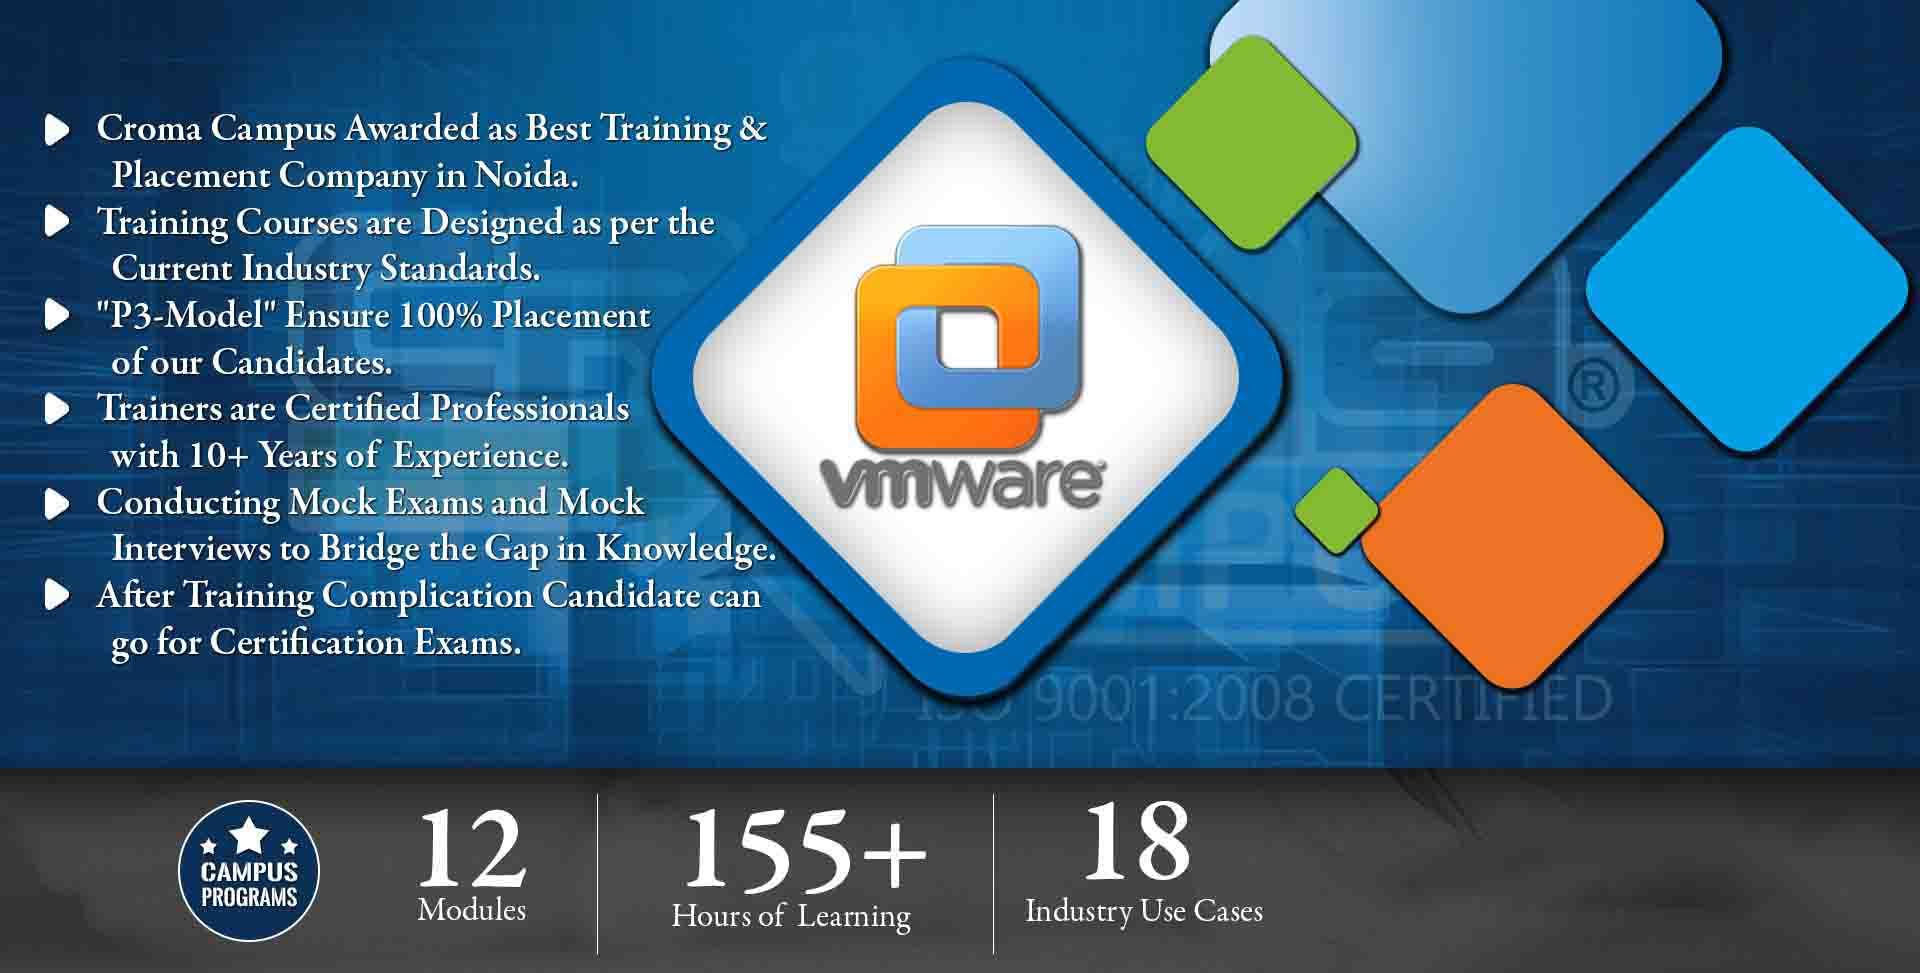 VMware Training in Delhi NCR- Croma Campus